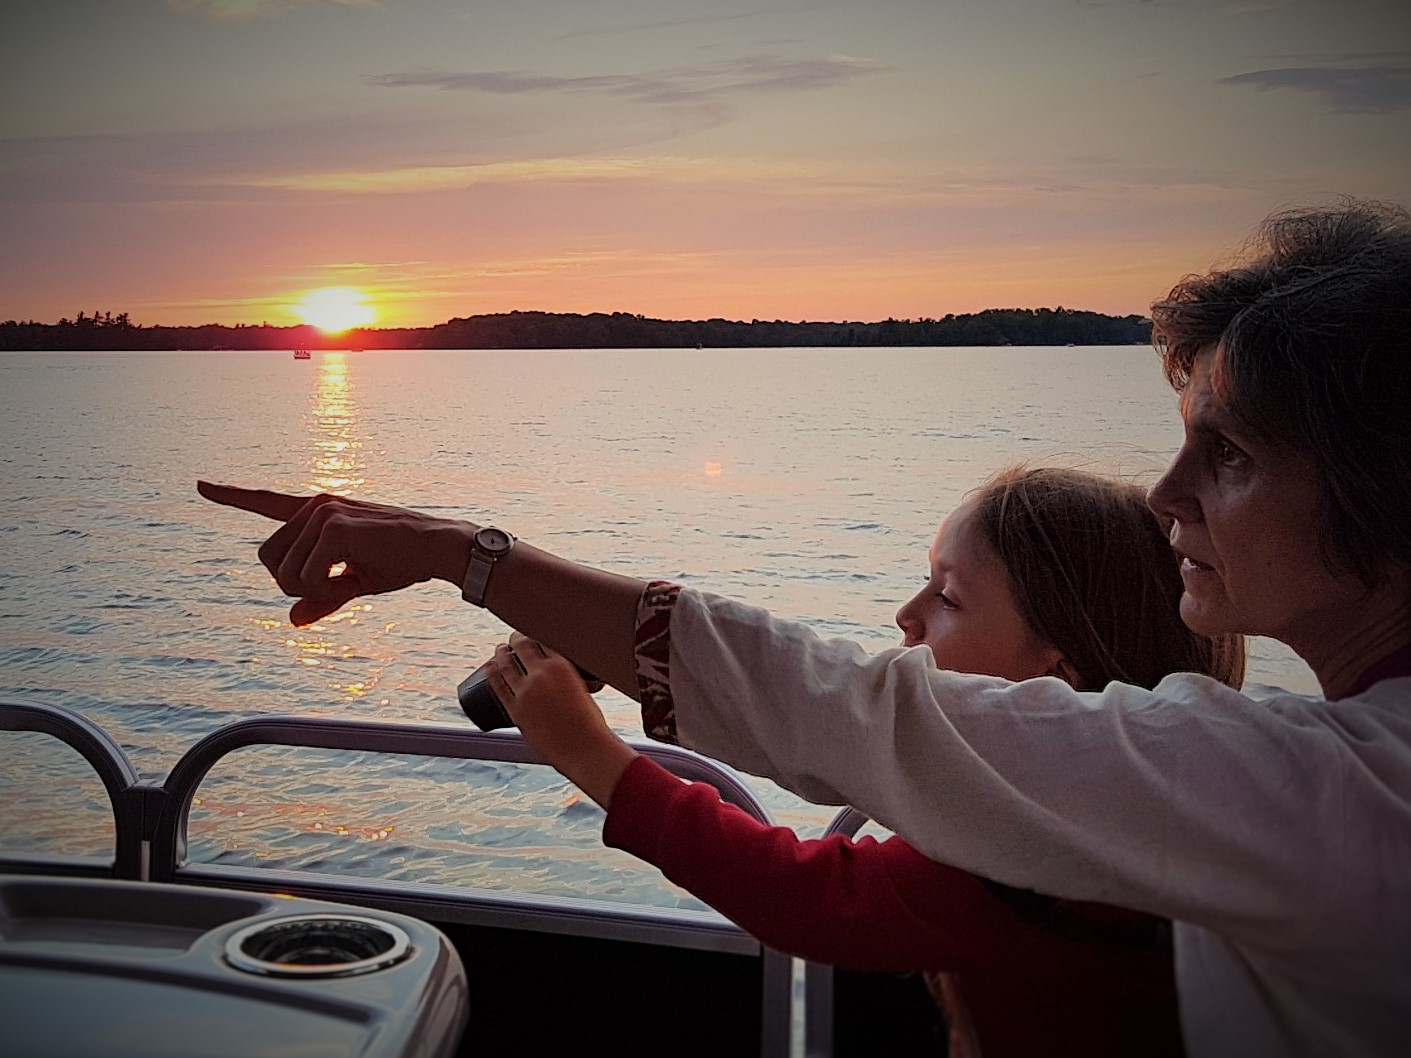 Image of people pointing on a boat with a sunset in the background.